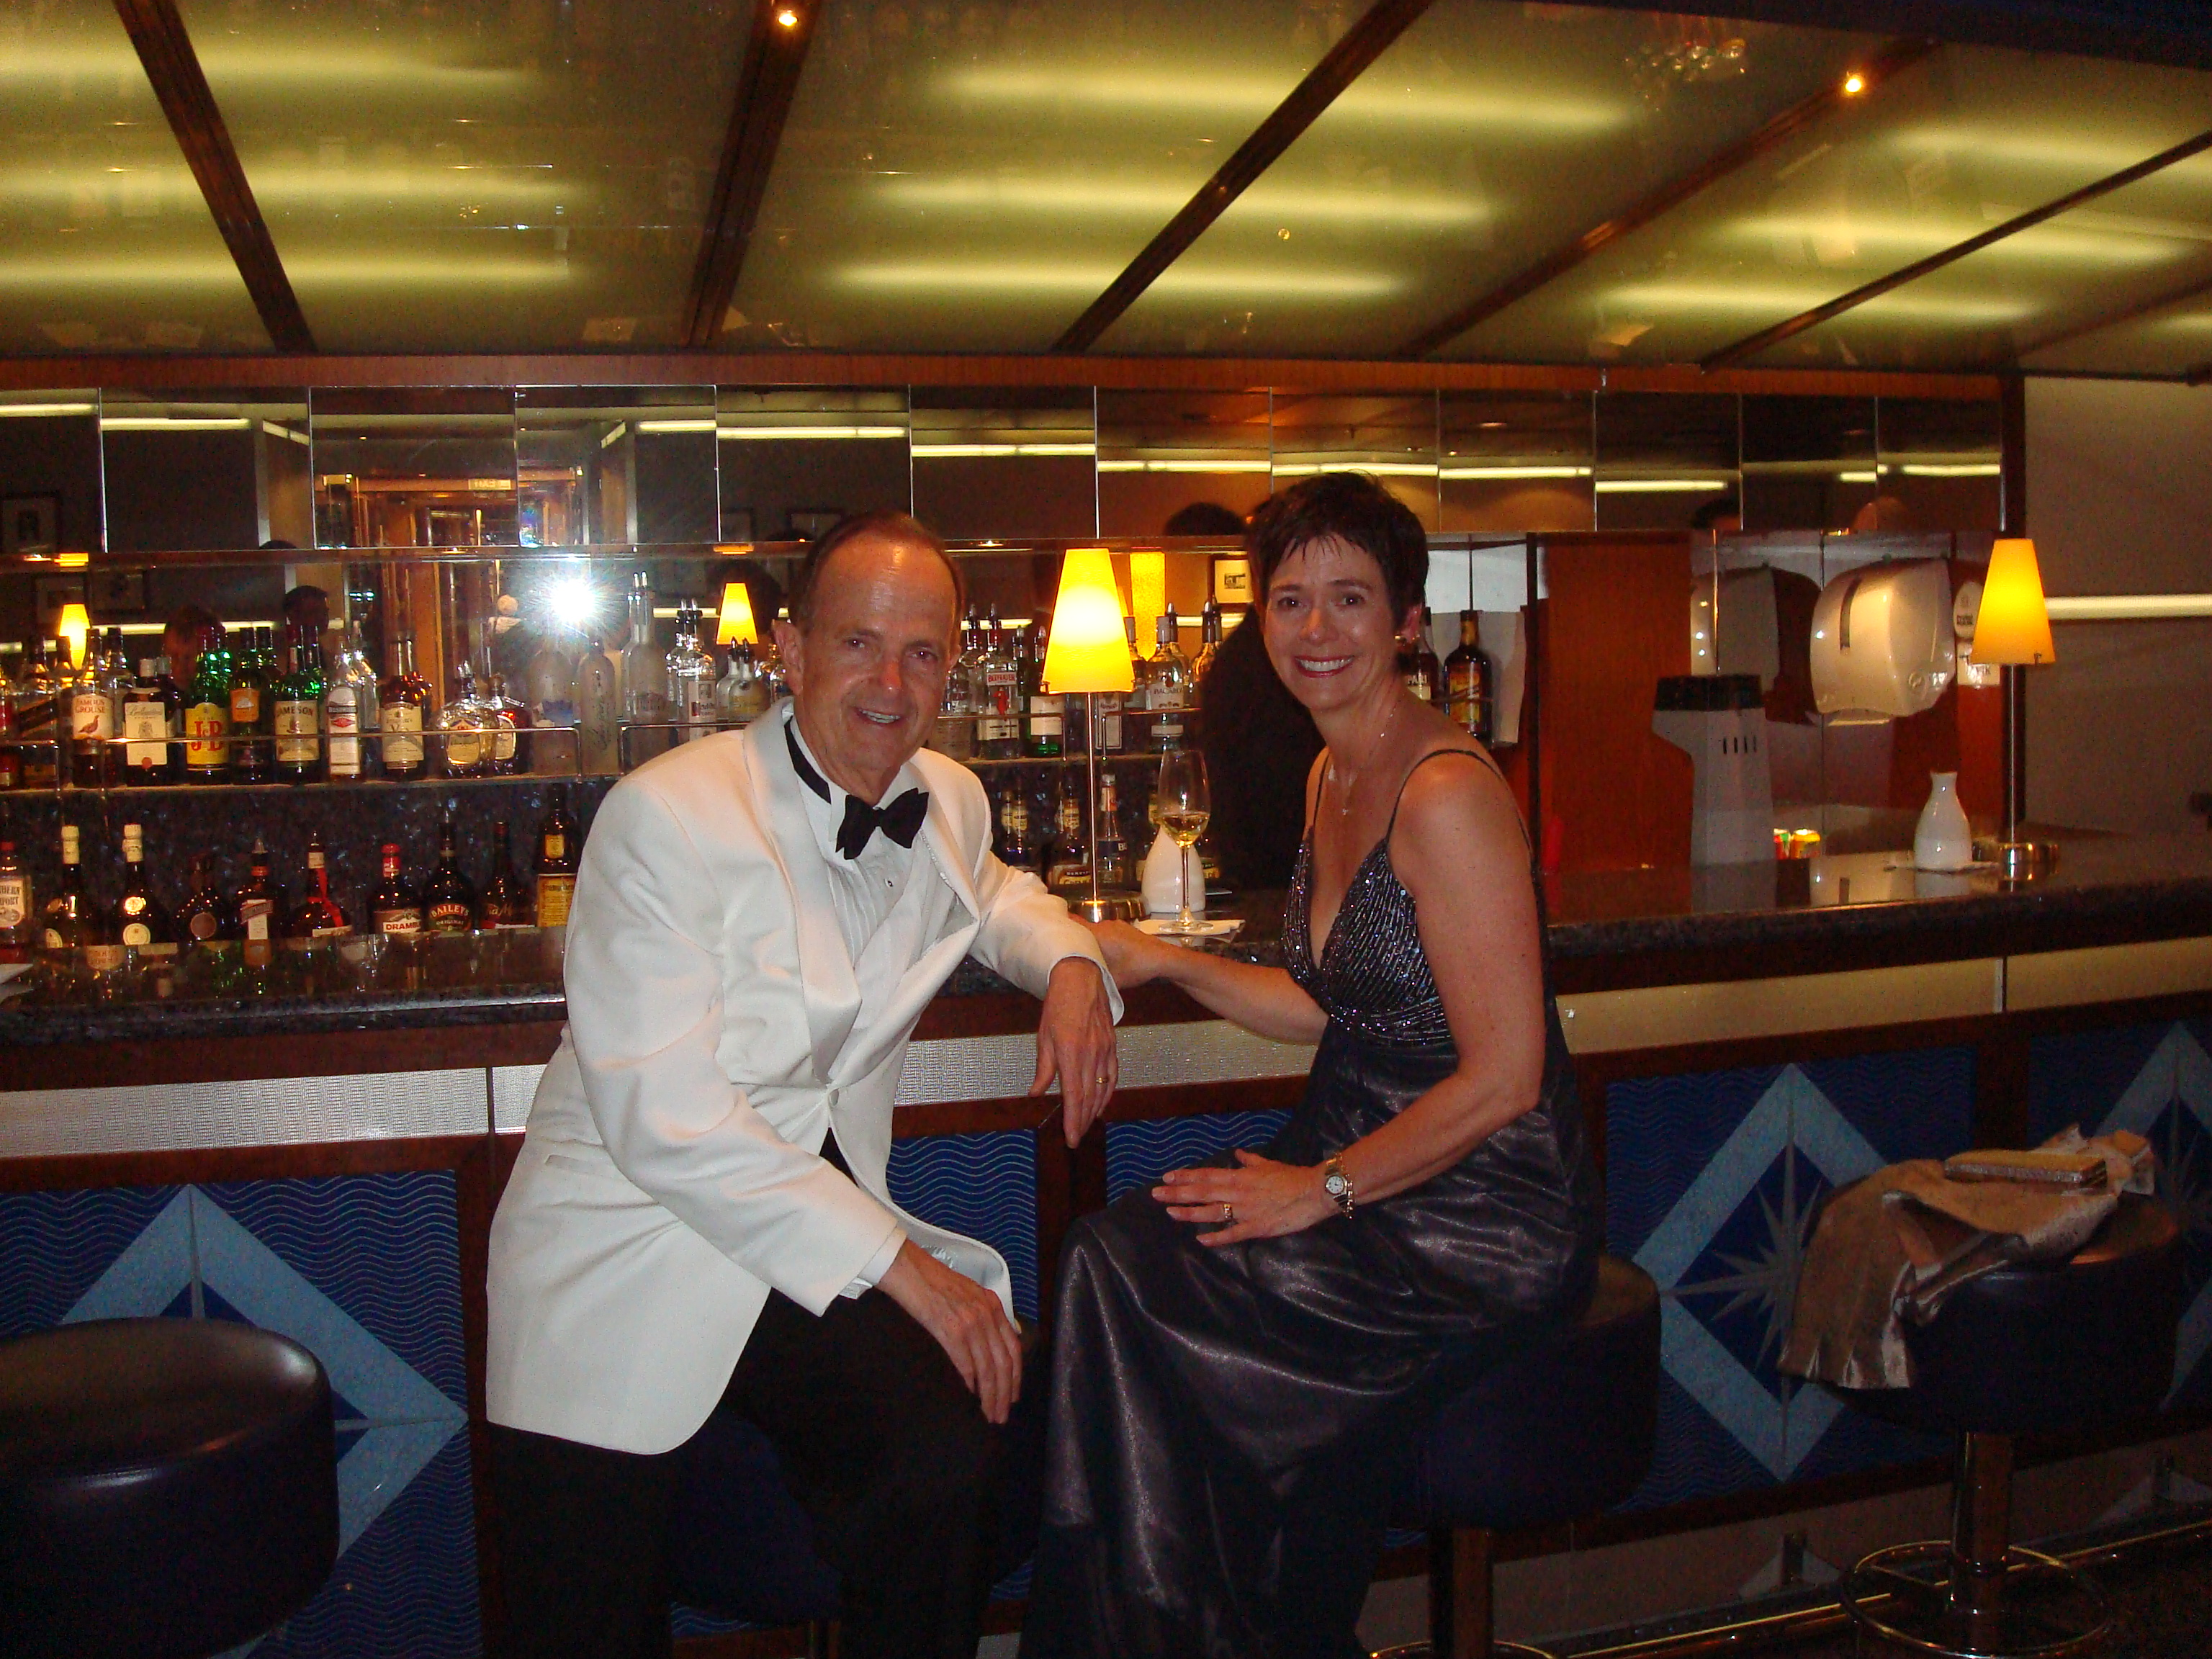 Dressing for dinner: An eye on cruise line dress codes – The ...